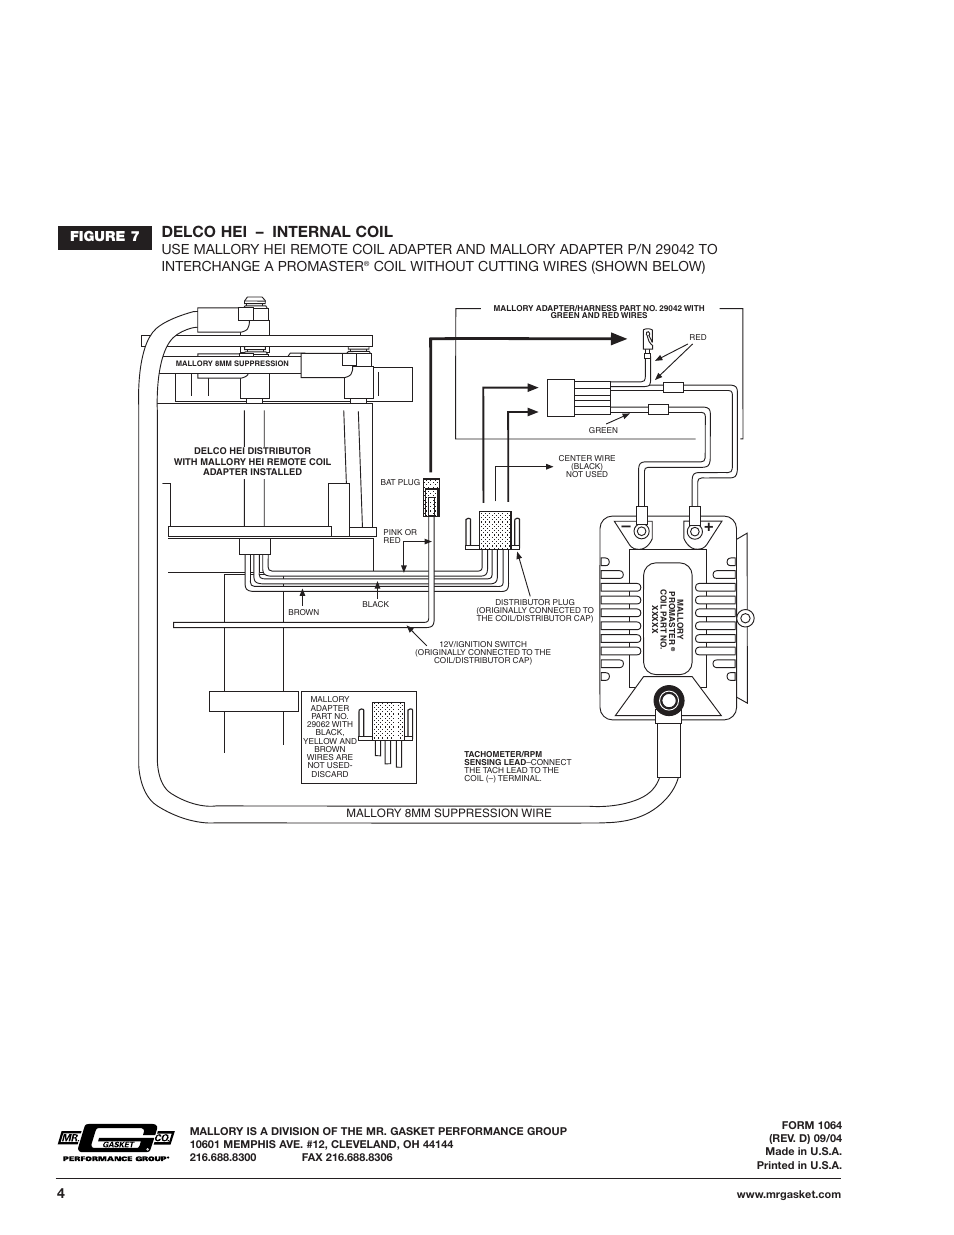 medium resolution of delco hei internal coil figure 7 coil without cutting wires shown below mallory ignition mallory promaster ignition coil 29440 29450 29625 29450